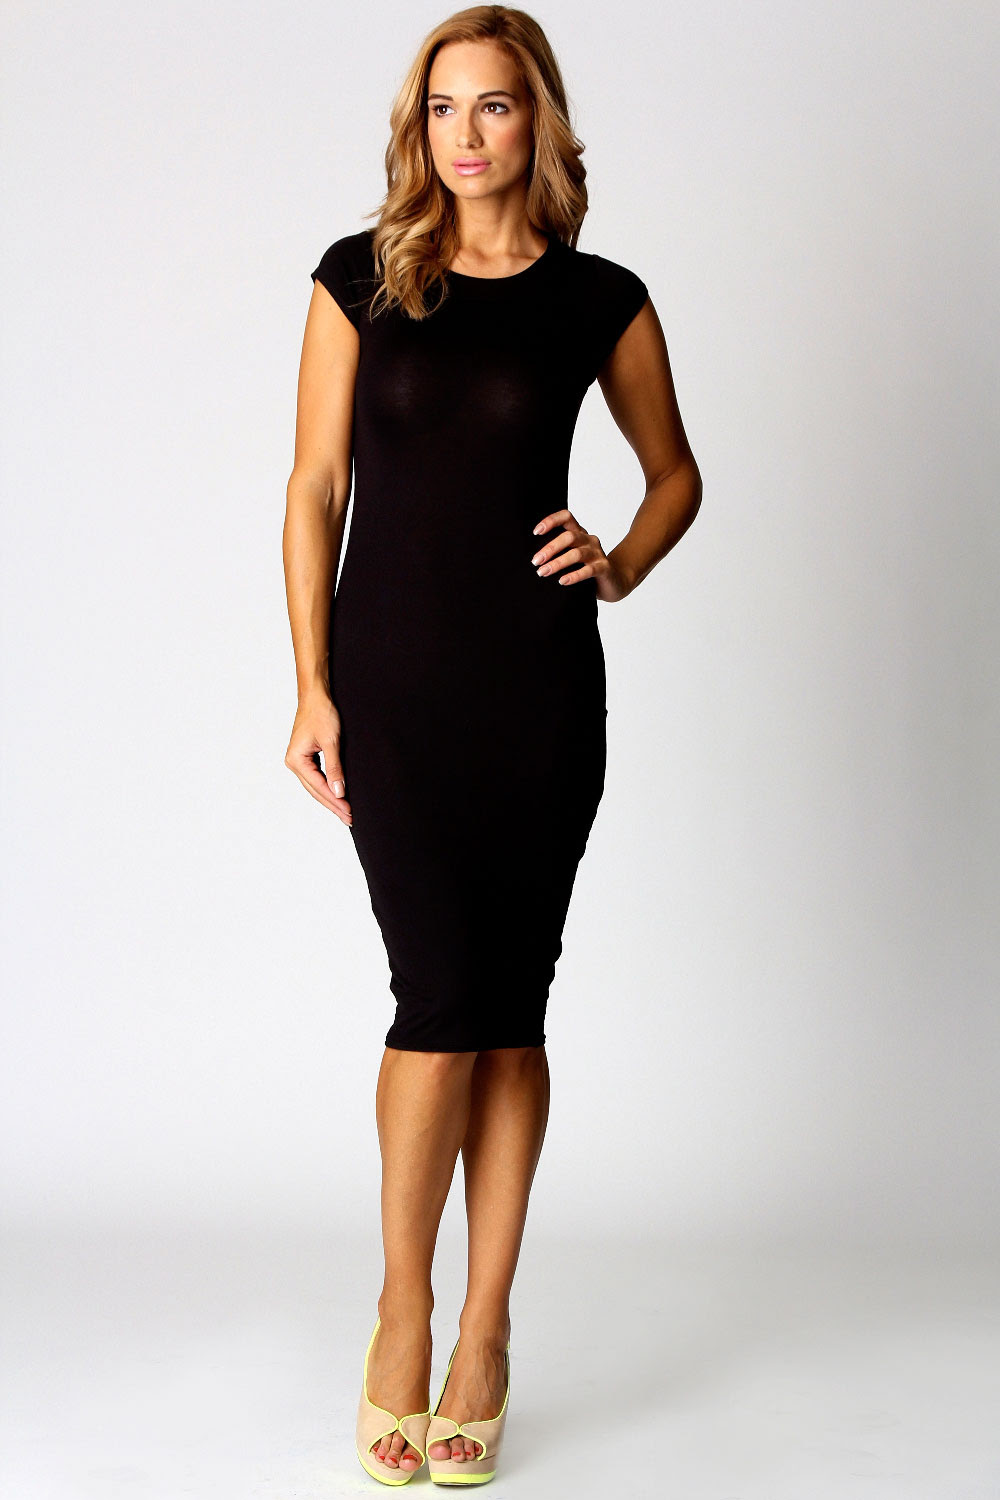 For wedding a midi dress bodycon what is with long